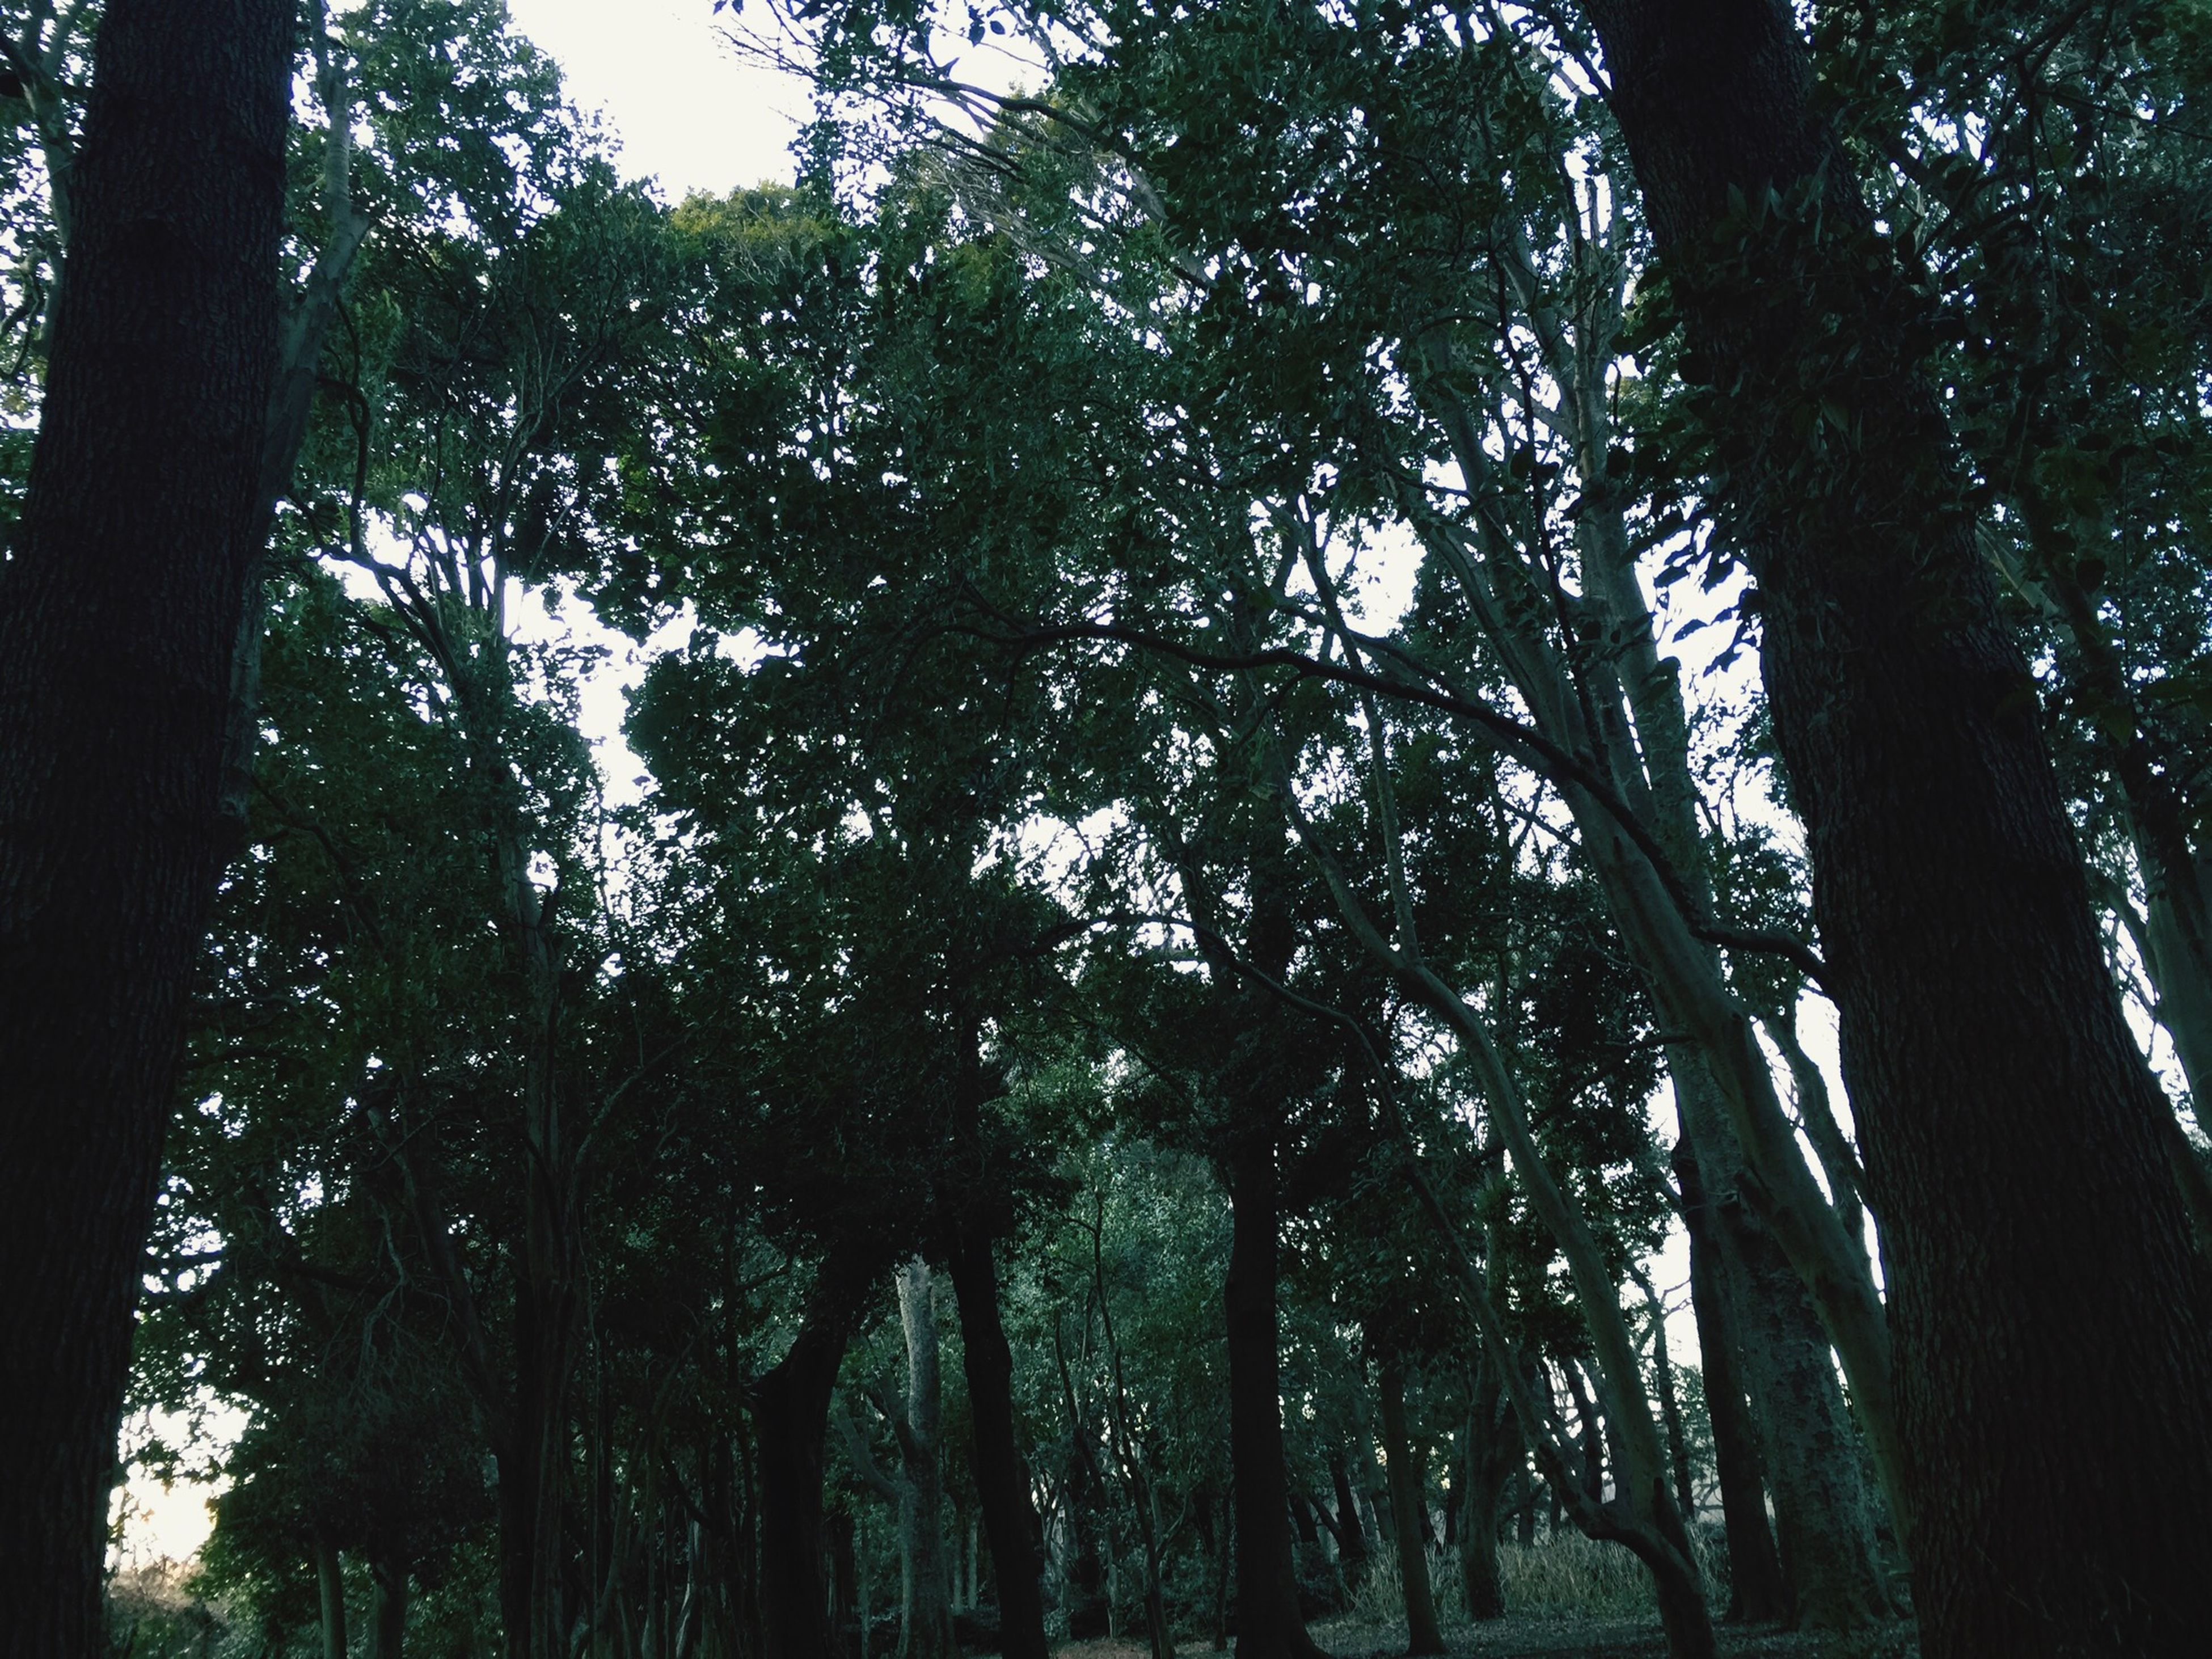 tree, growth, tree trunk, tranquility, forest, low angle view, branch, nature, tranquil scene, woodland, beauty in nature, scenics, green color, sky, lush foliage, non-urban scene, tall - high, outdoors, day, idyllic